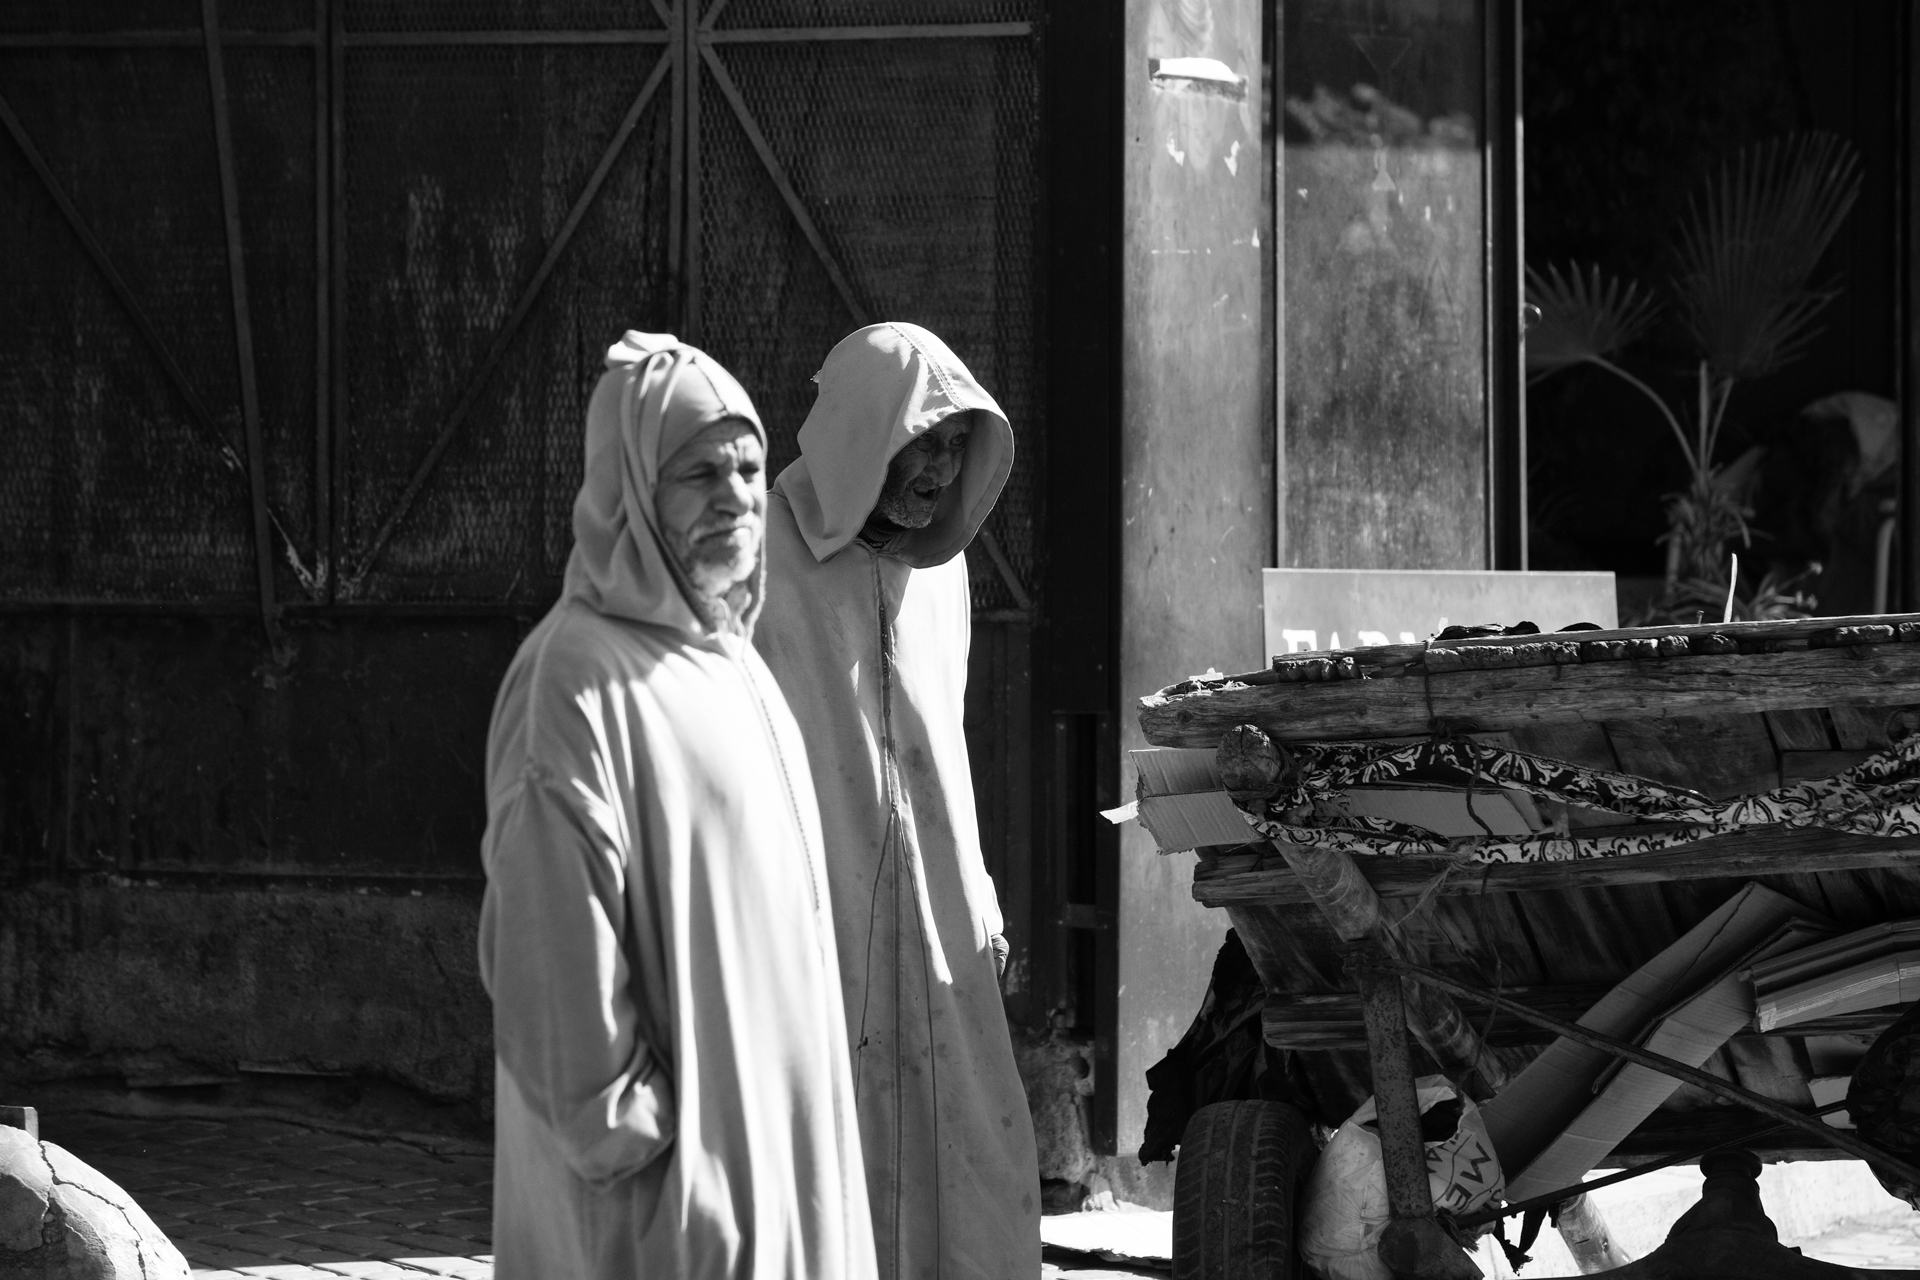 Almudena Plaza-Marrakech-men-street 2